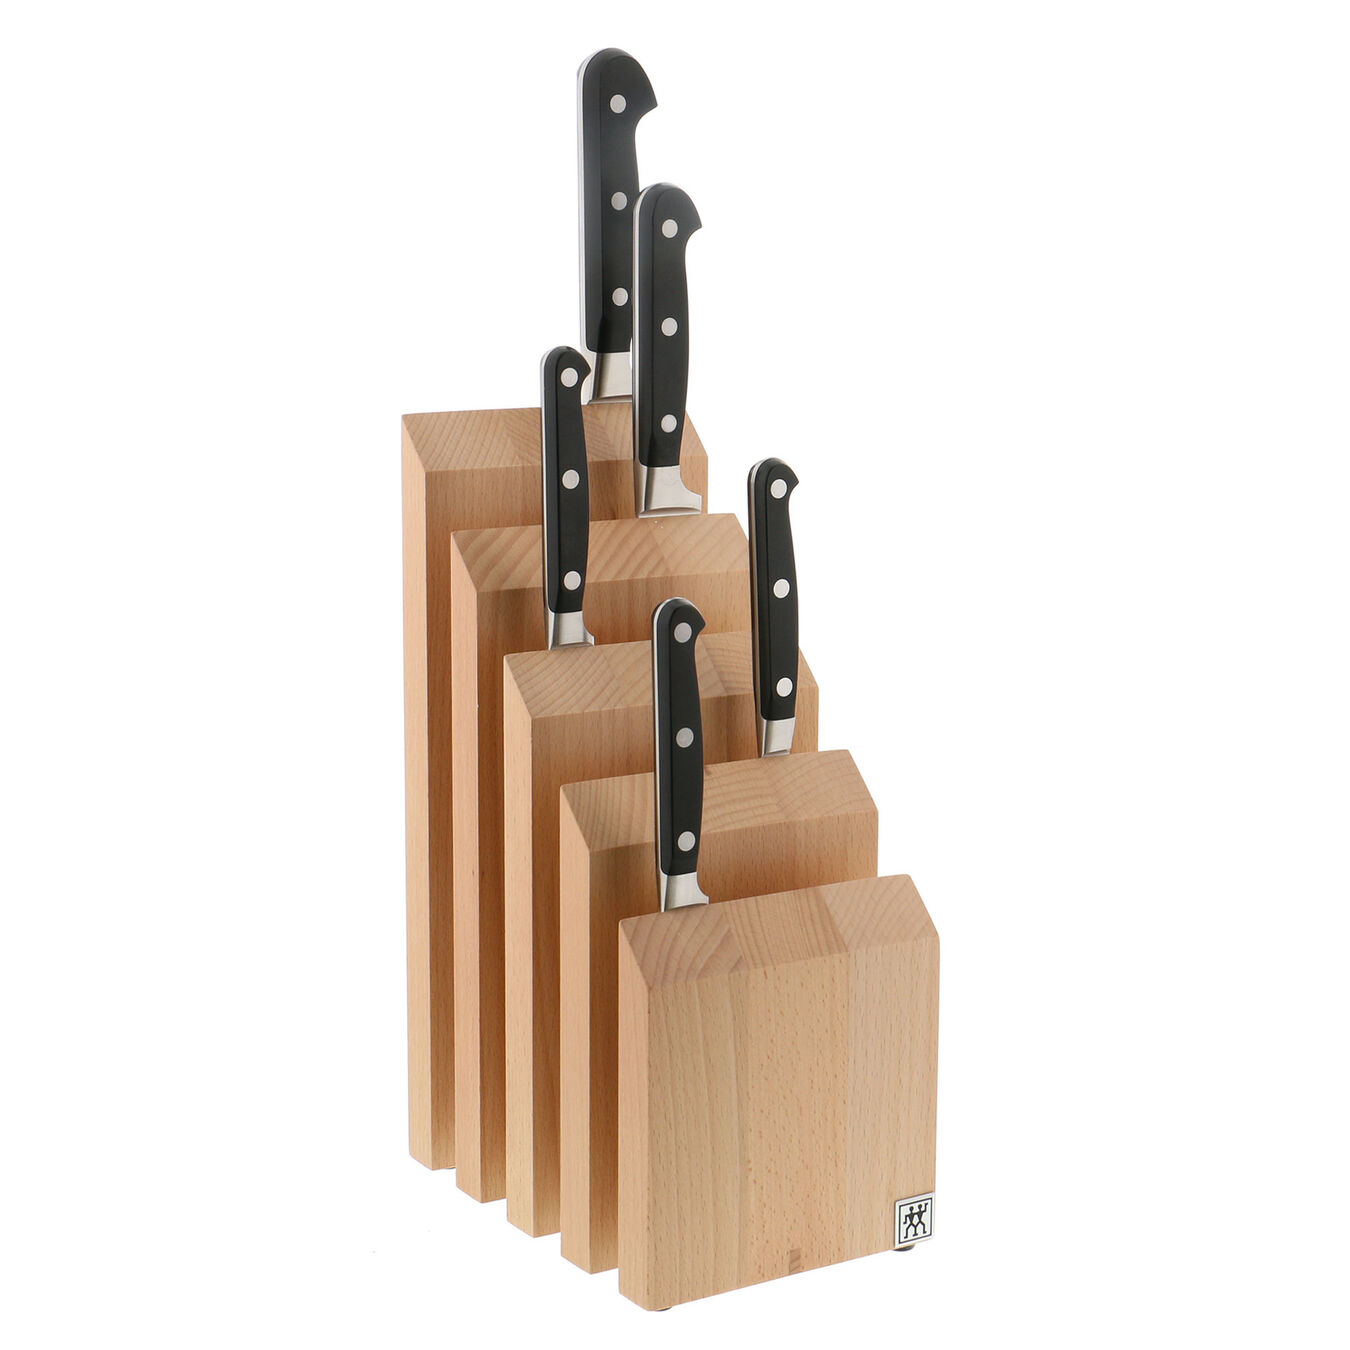 Upright Magnetic Knife Block - Natural Beechwood,,large 2